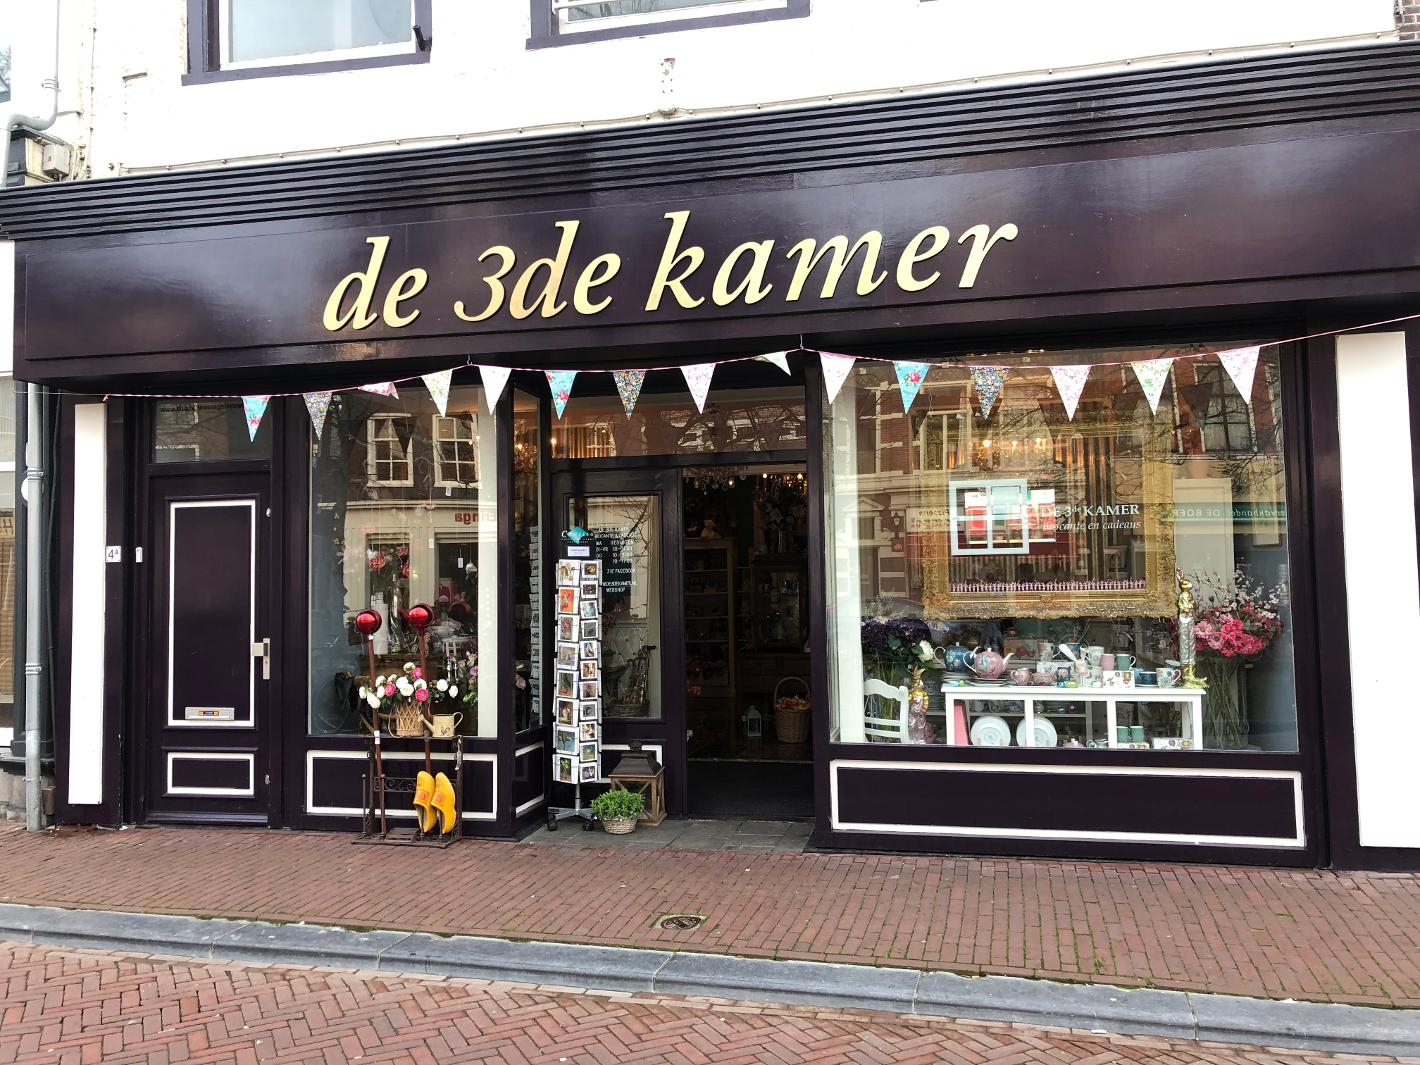 Photo De 3de Kamer, brocante & cadeaus en Leeuwarden, Shopping, Cadeau, Art de vivre, Gourmandise - #1